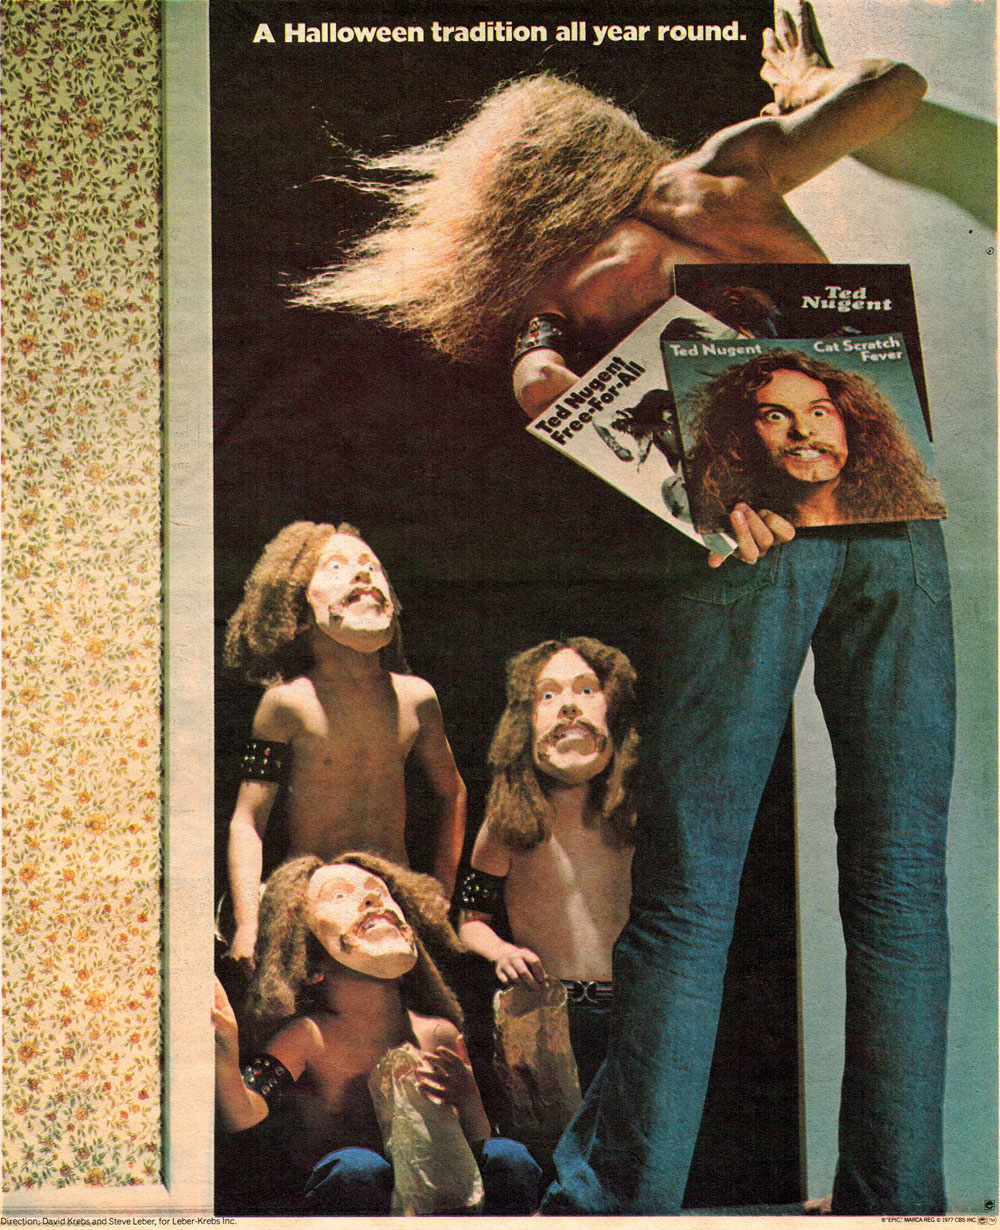 Photo - 1977 Print Ad For Ted Nugent Halloween Costume